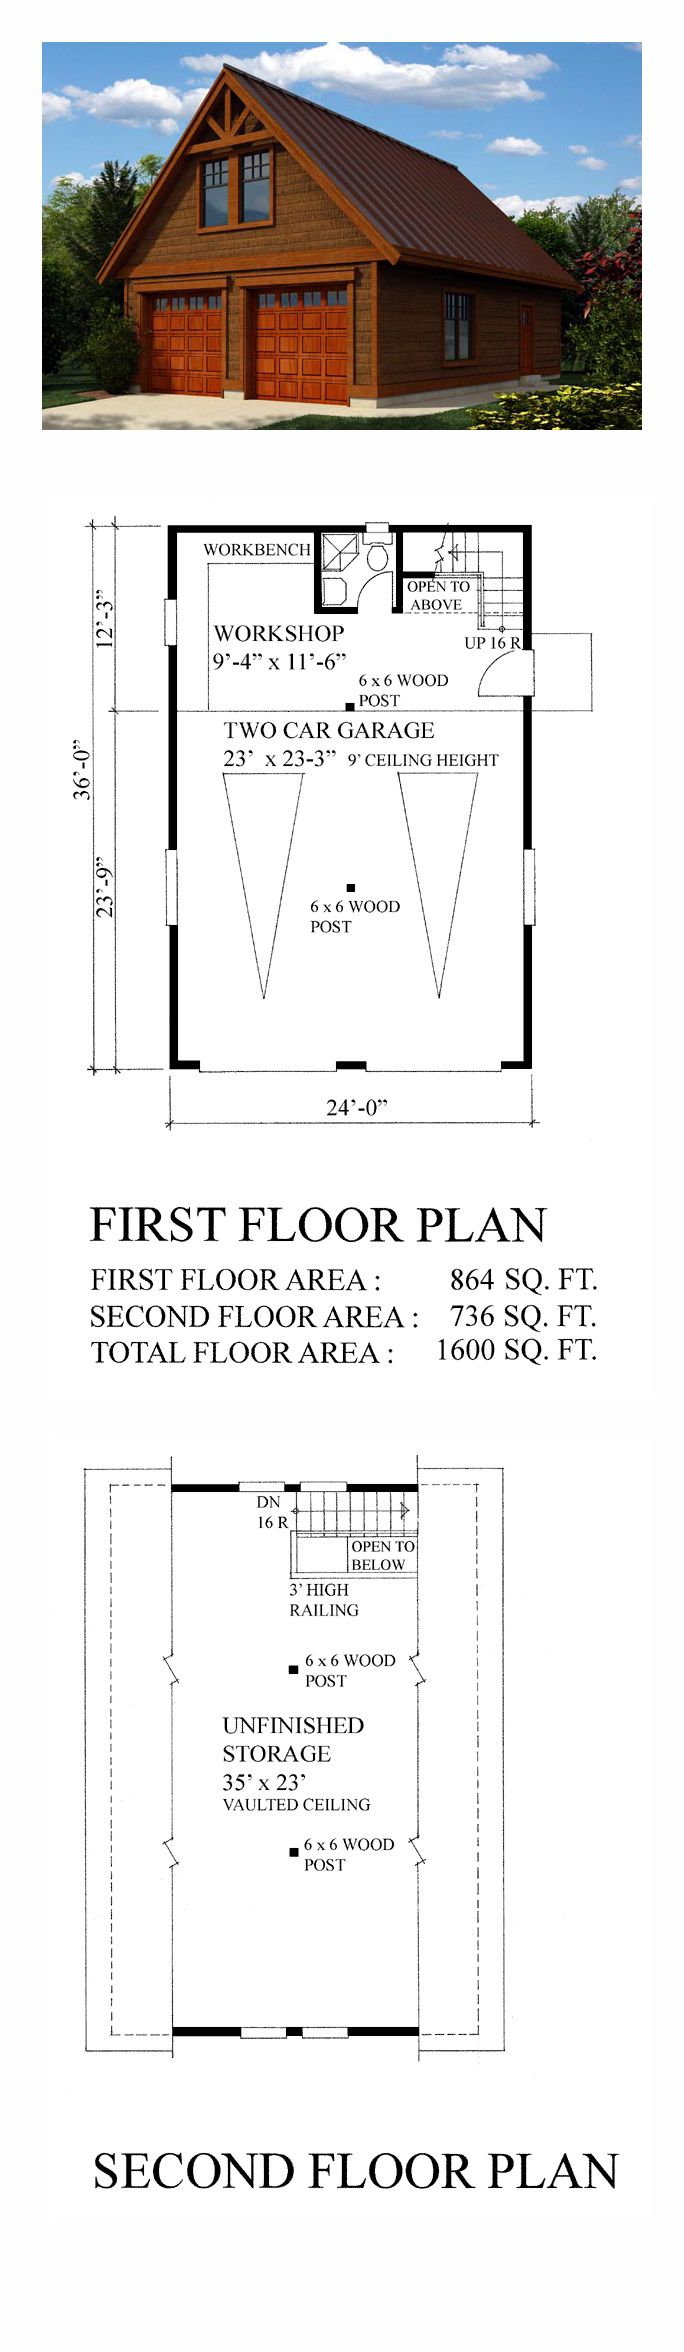 Two Car Garage Plan 76019 | Bonus Area: 736 sq. ft., Garage Area: 864 sq. ft., Garage Bays: 2, Width: 24', Depth: 36'